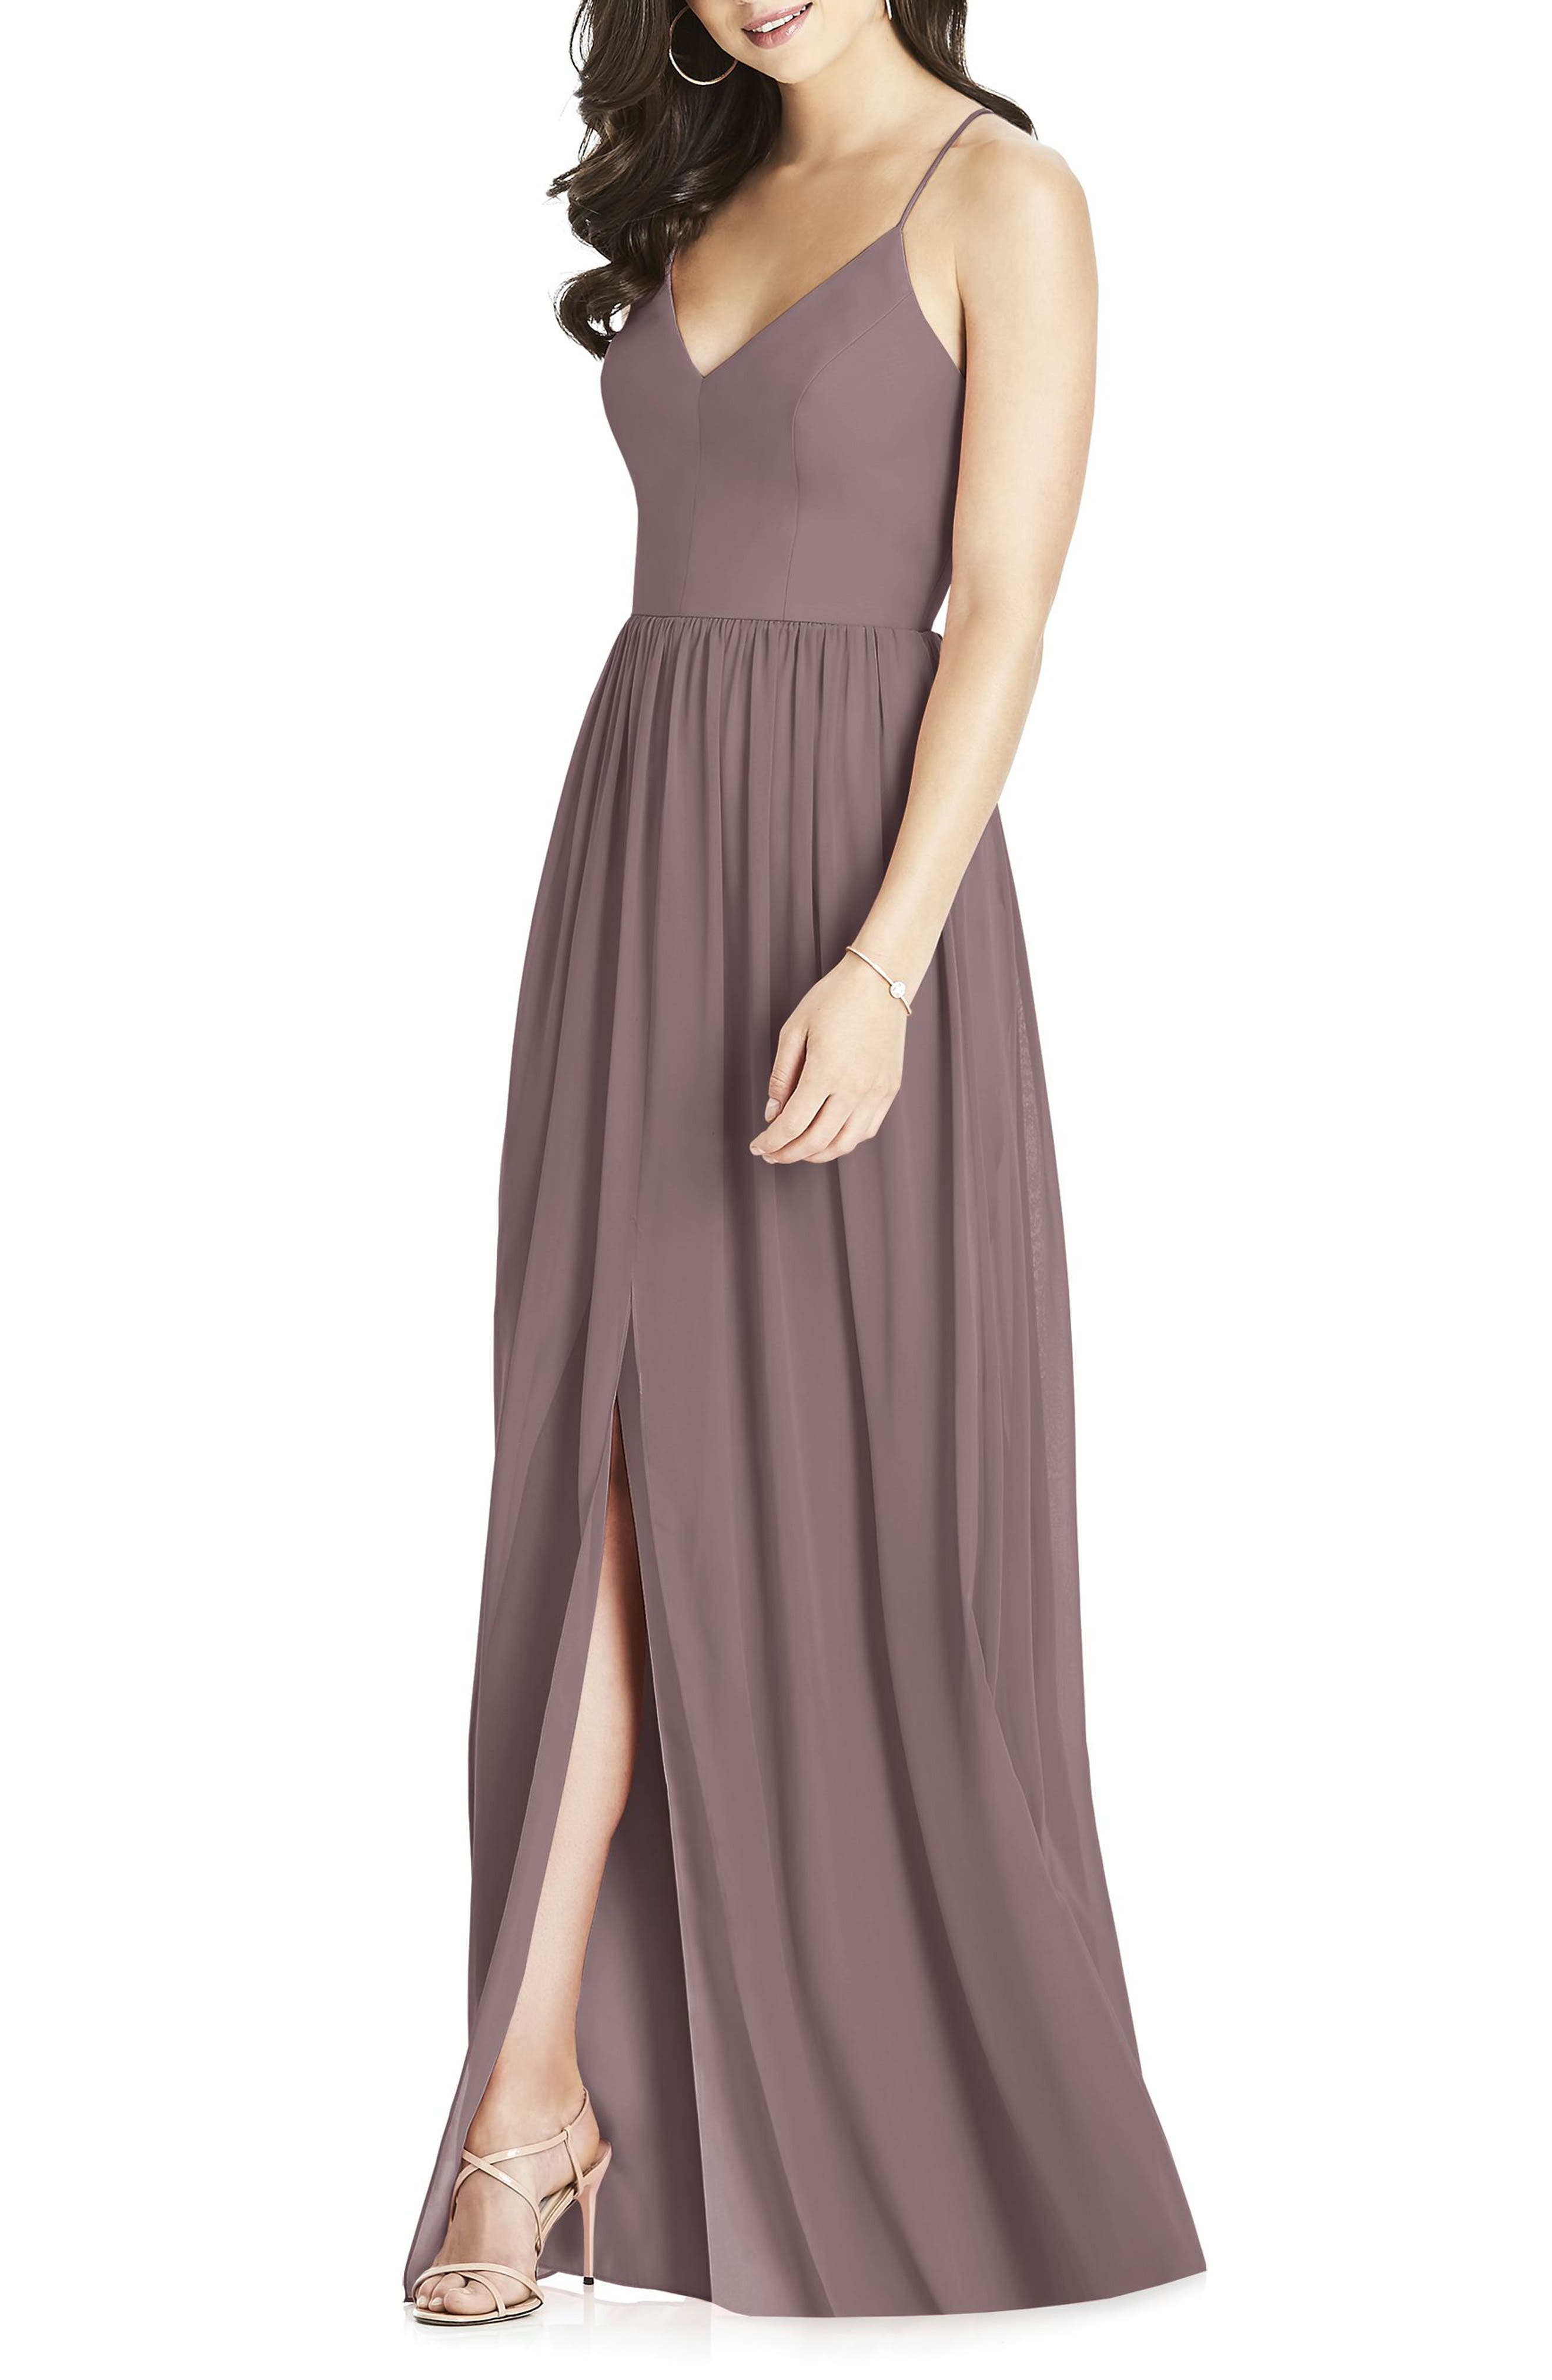 Brown bridesmaid wedding party dresses nordstrom ombrellifo Image collections